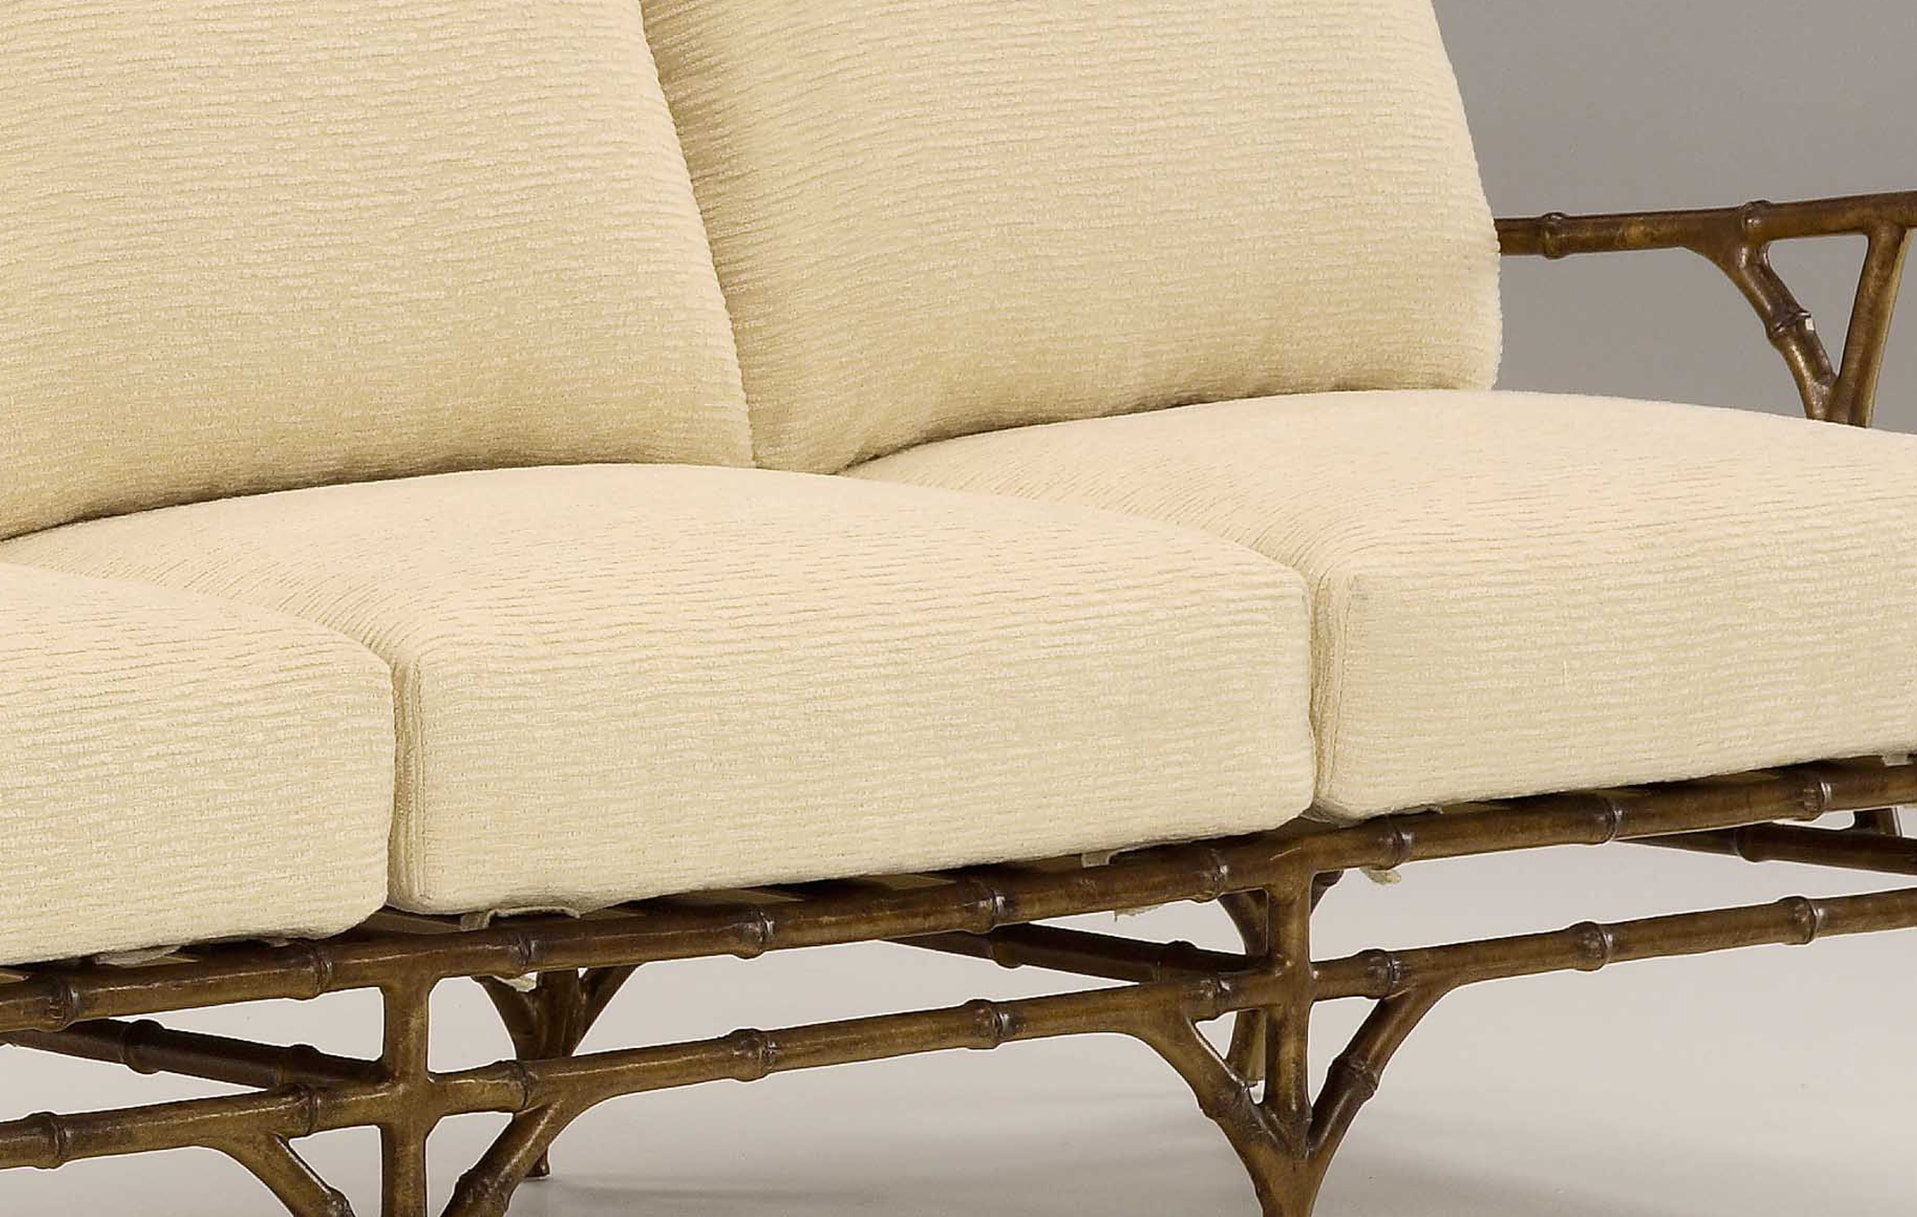 Crafted By Michael Taylor Designs, A California Based Studio Renowned For  Creating Fine, Uncluttered Outdoor Furniture To Cherish For Generations.